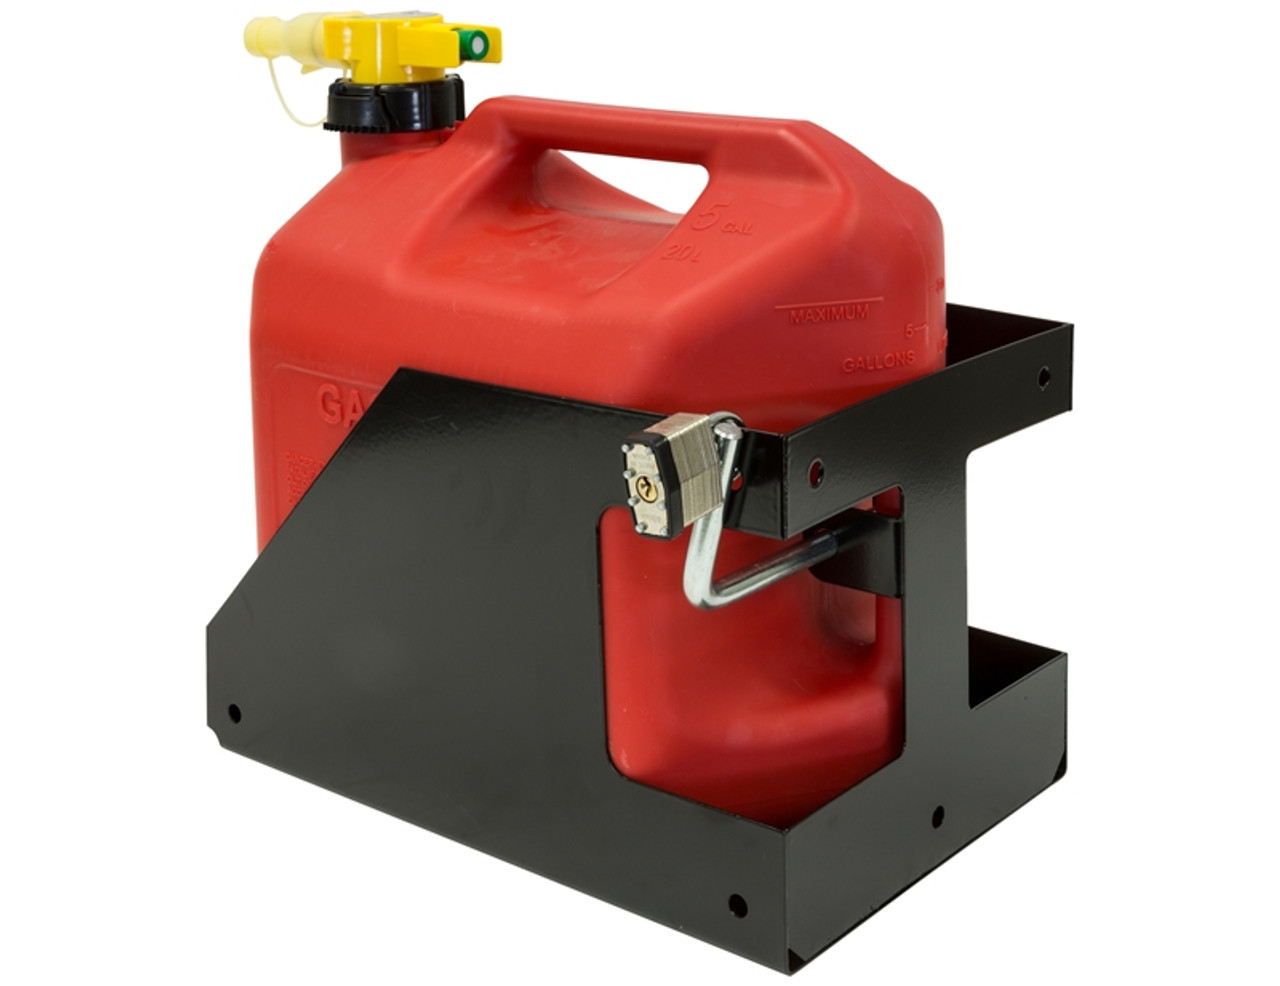 https leonardaccessories com product towing trailer accessories buyers products locking gas container rack landscape trailers